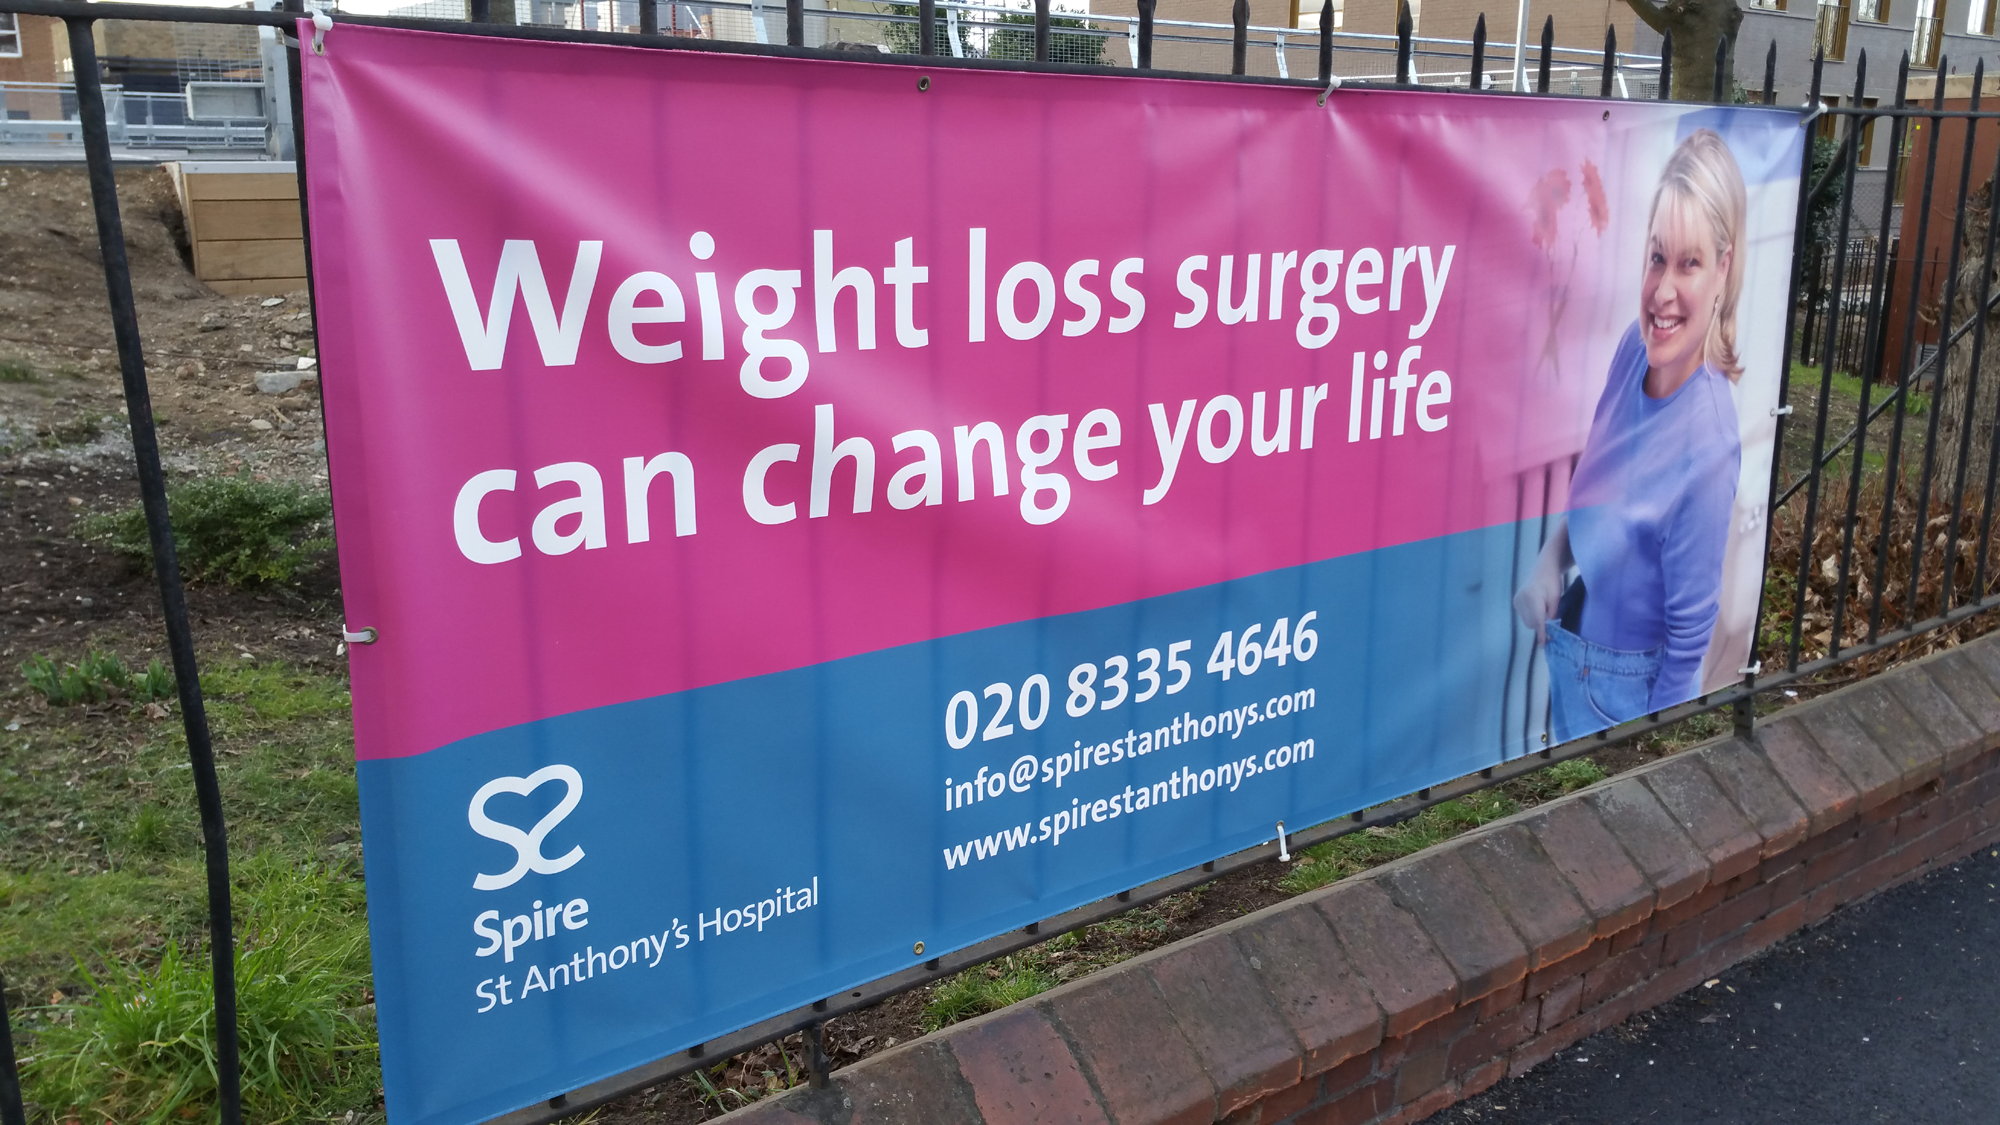 Spire St Anthony's Hospital - Weight loss surgery can change your life